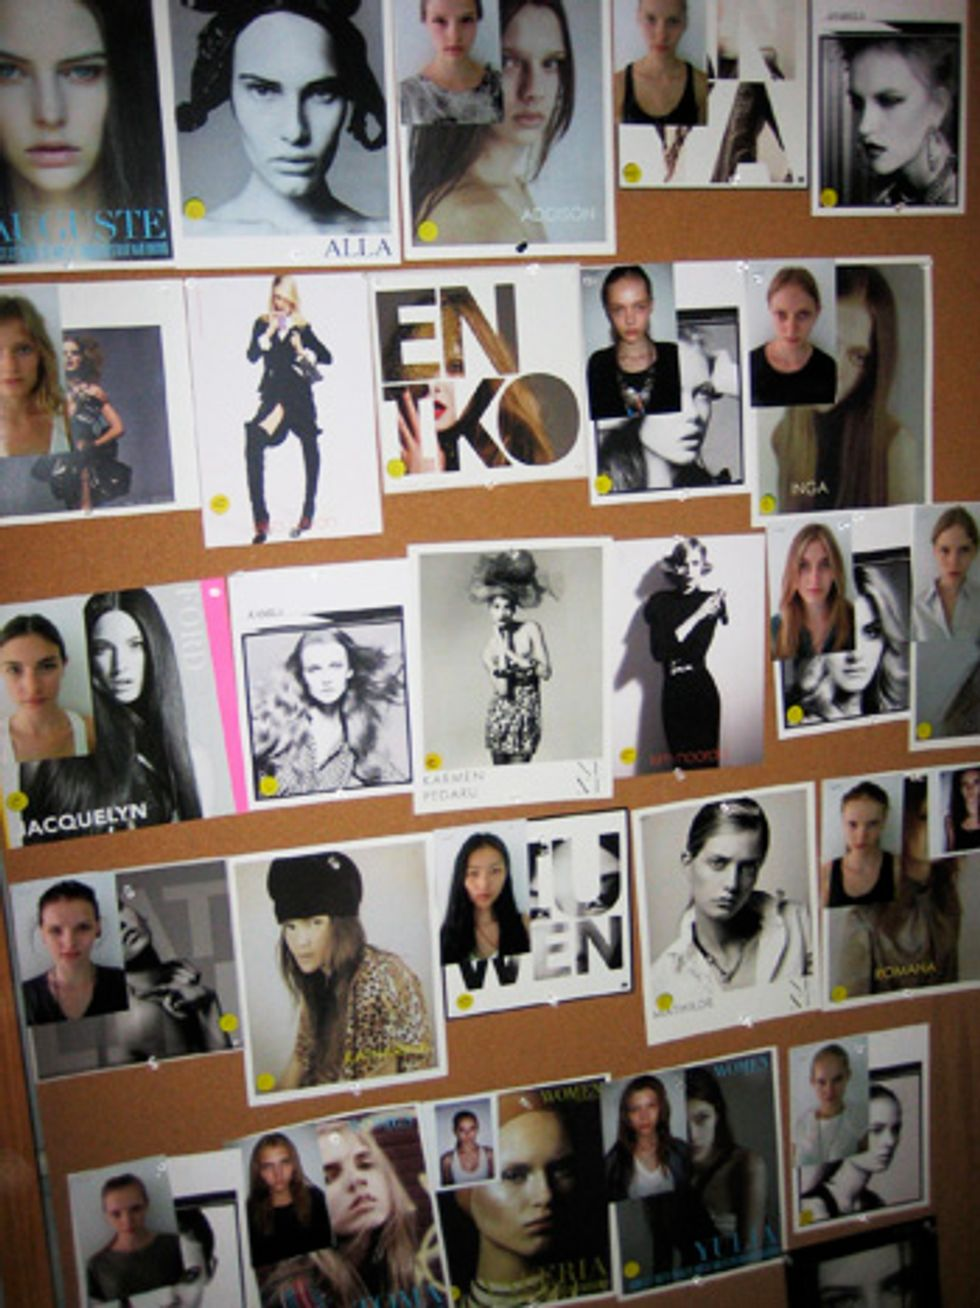 Checking in With Jill Stuart After Her Cher-Inspired Spring Show